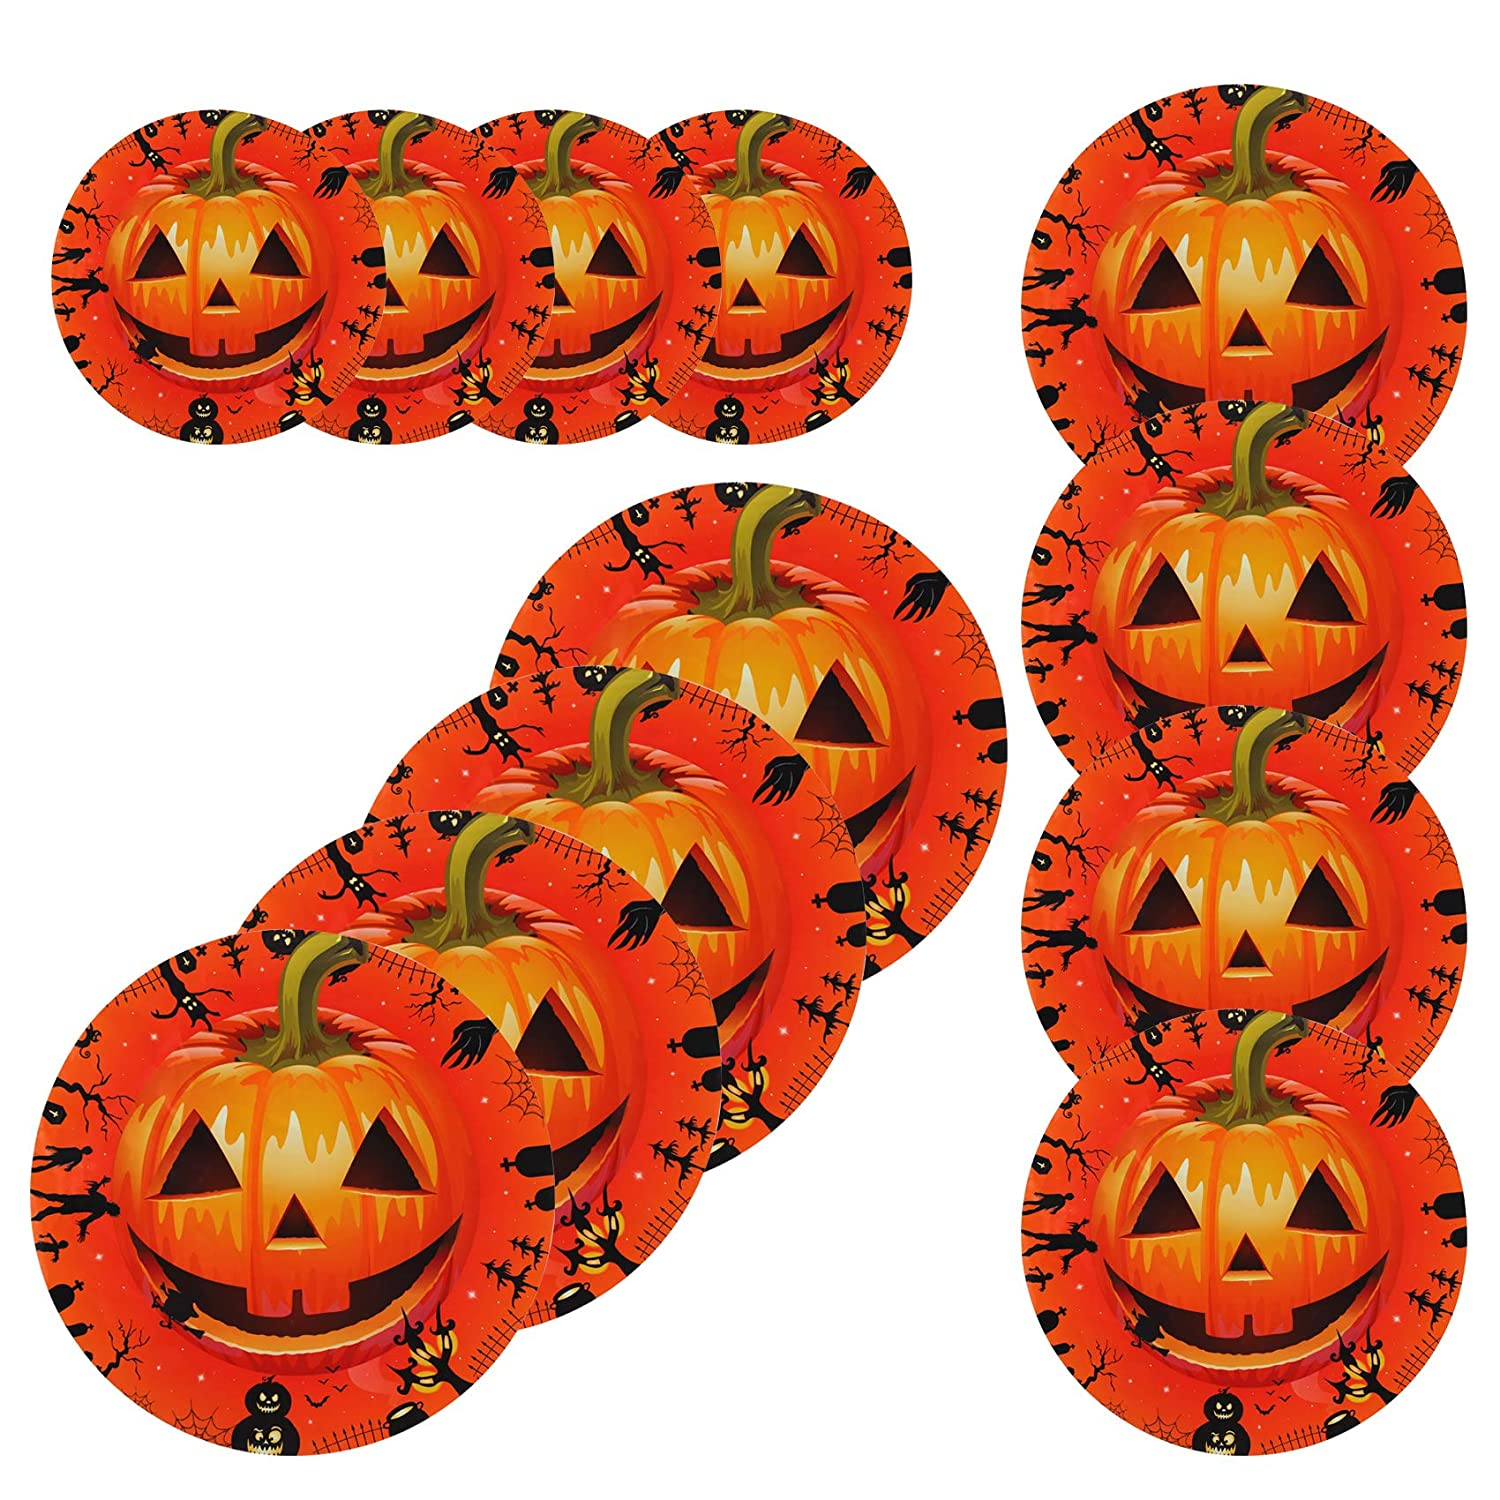 12 Pcs Halloween Pumpkin Signs Floor Sticker Decals Wall Scary Round Stickers Waterproof PVC Party Decoration Supplies